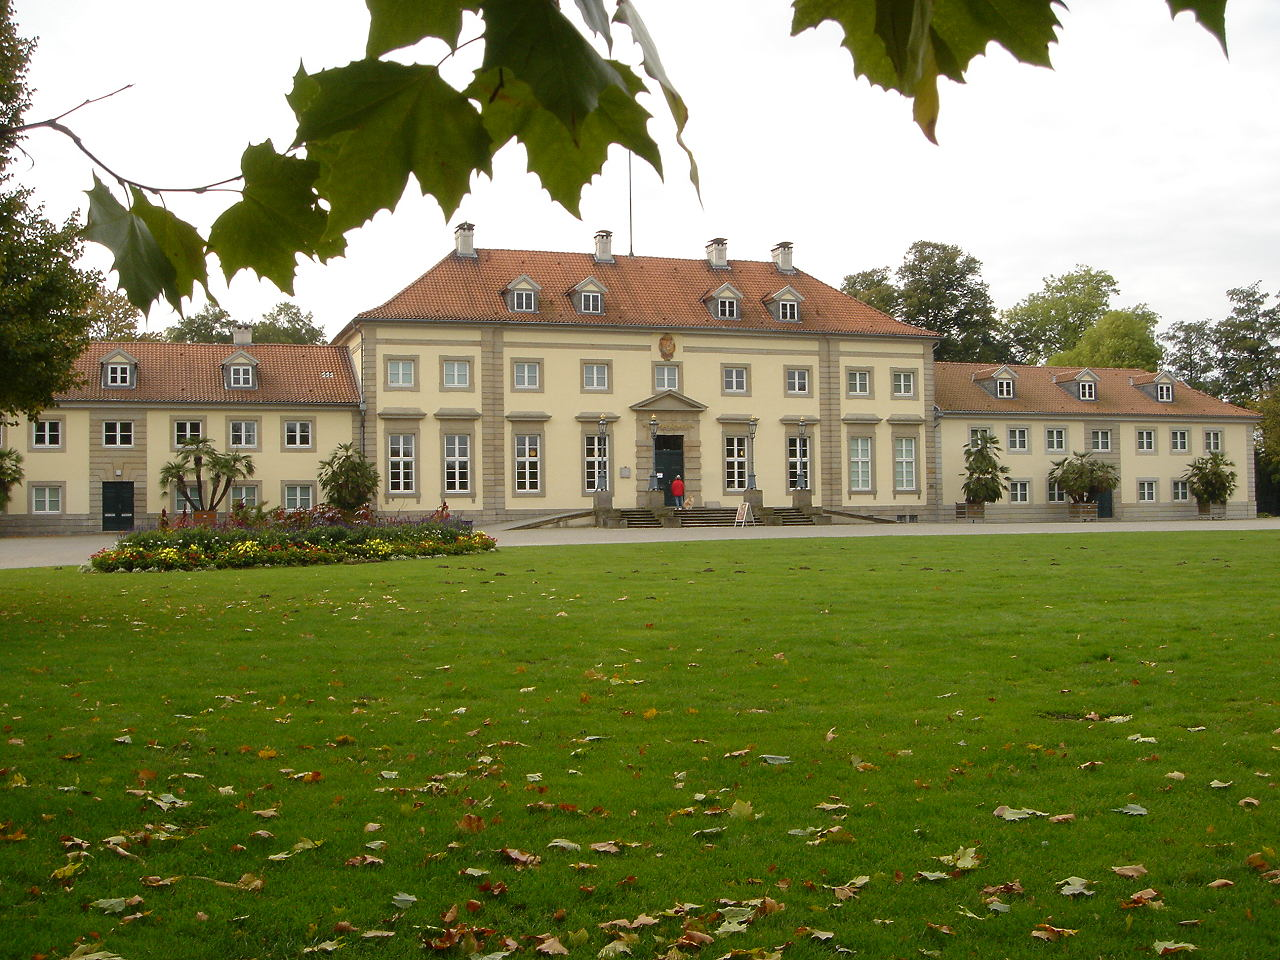 Hannover, Germany:The Wilhelm Busch Museum